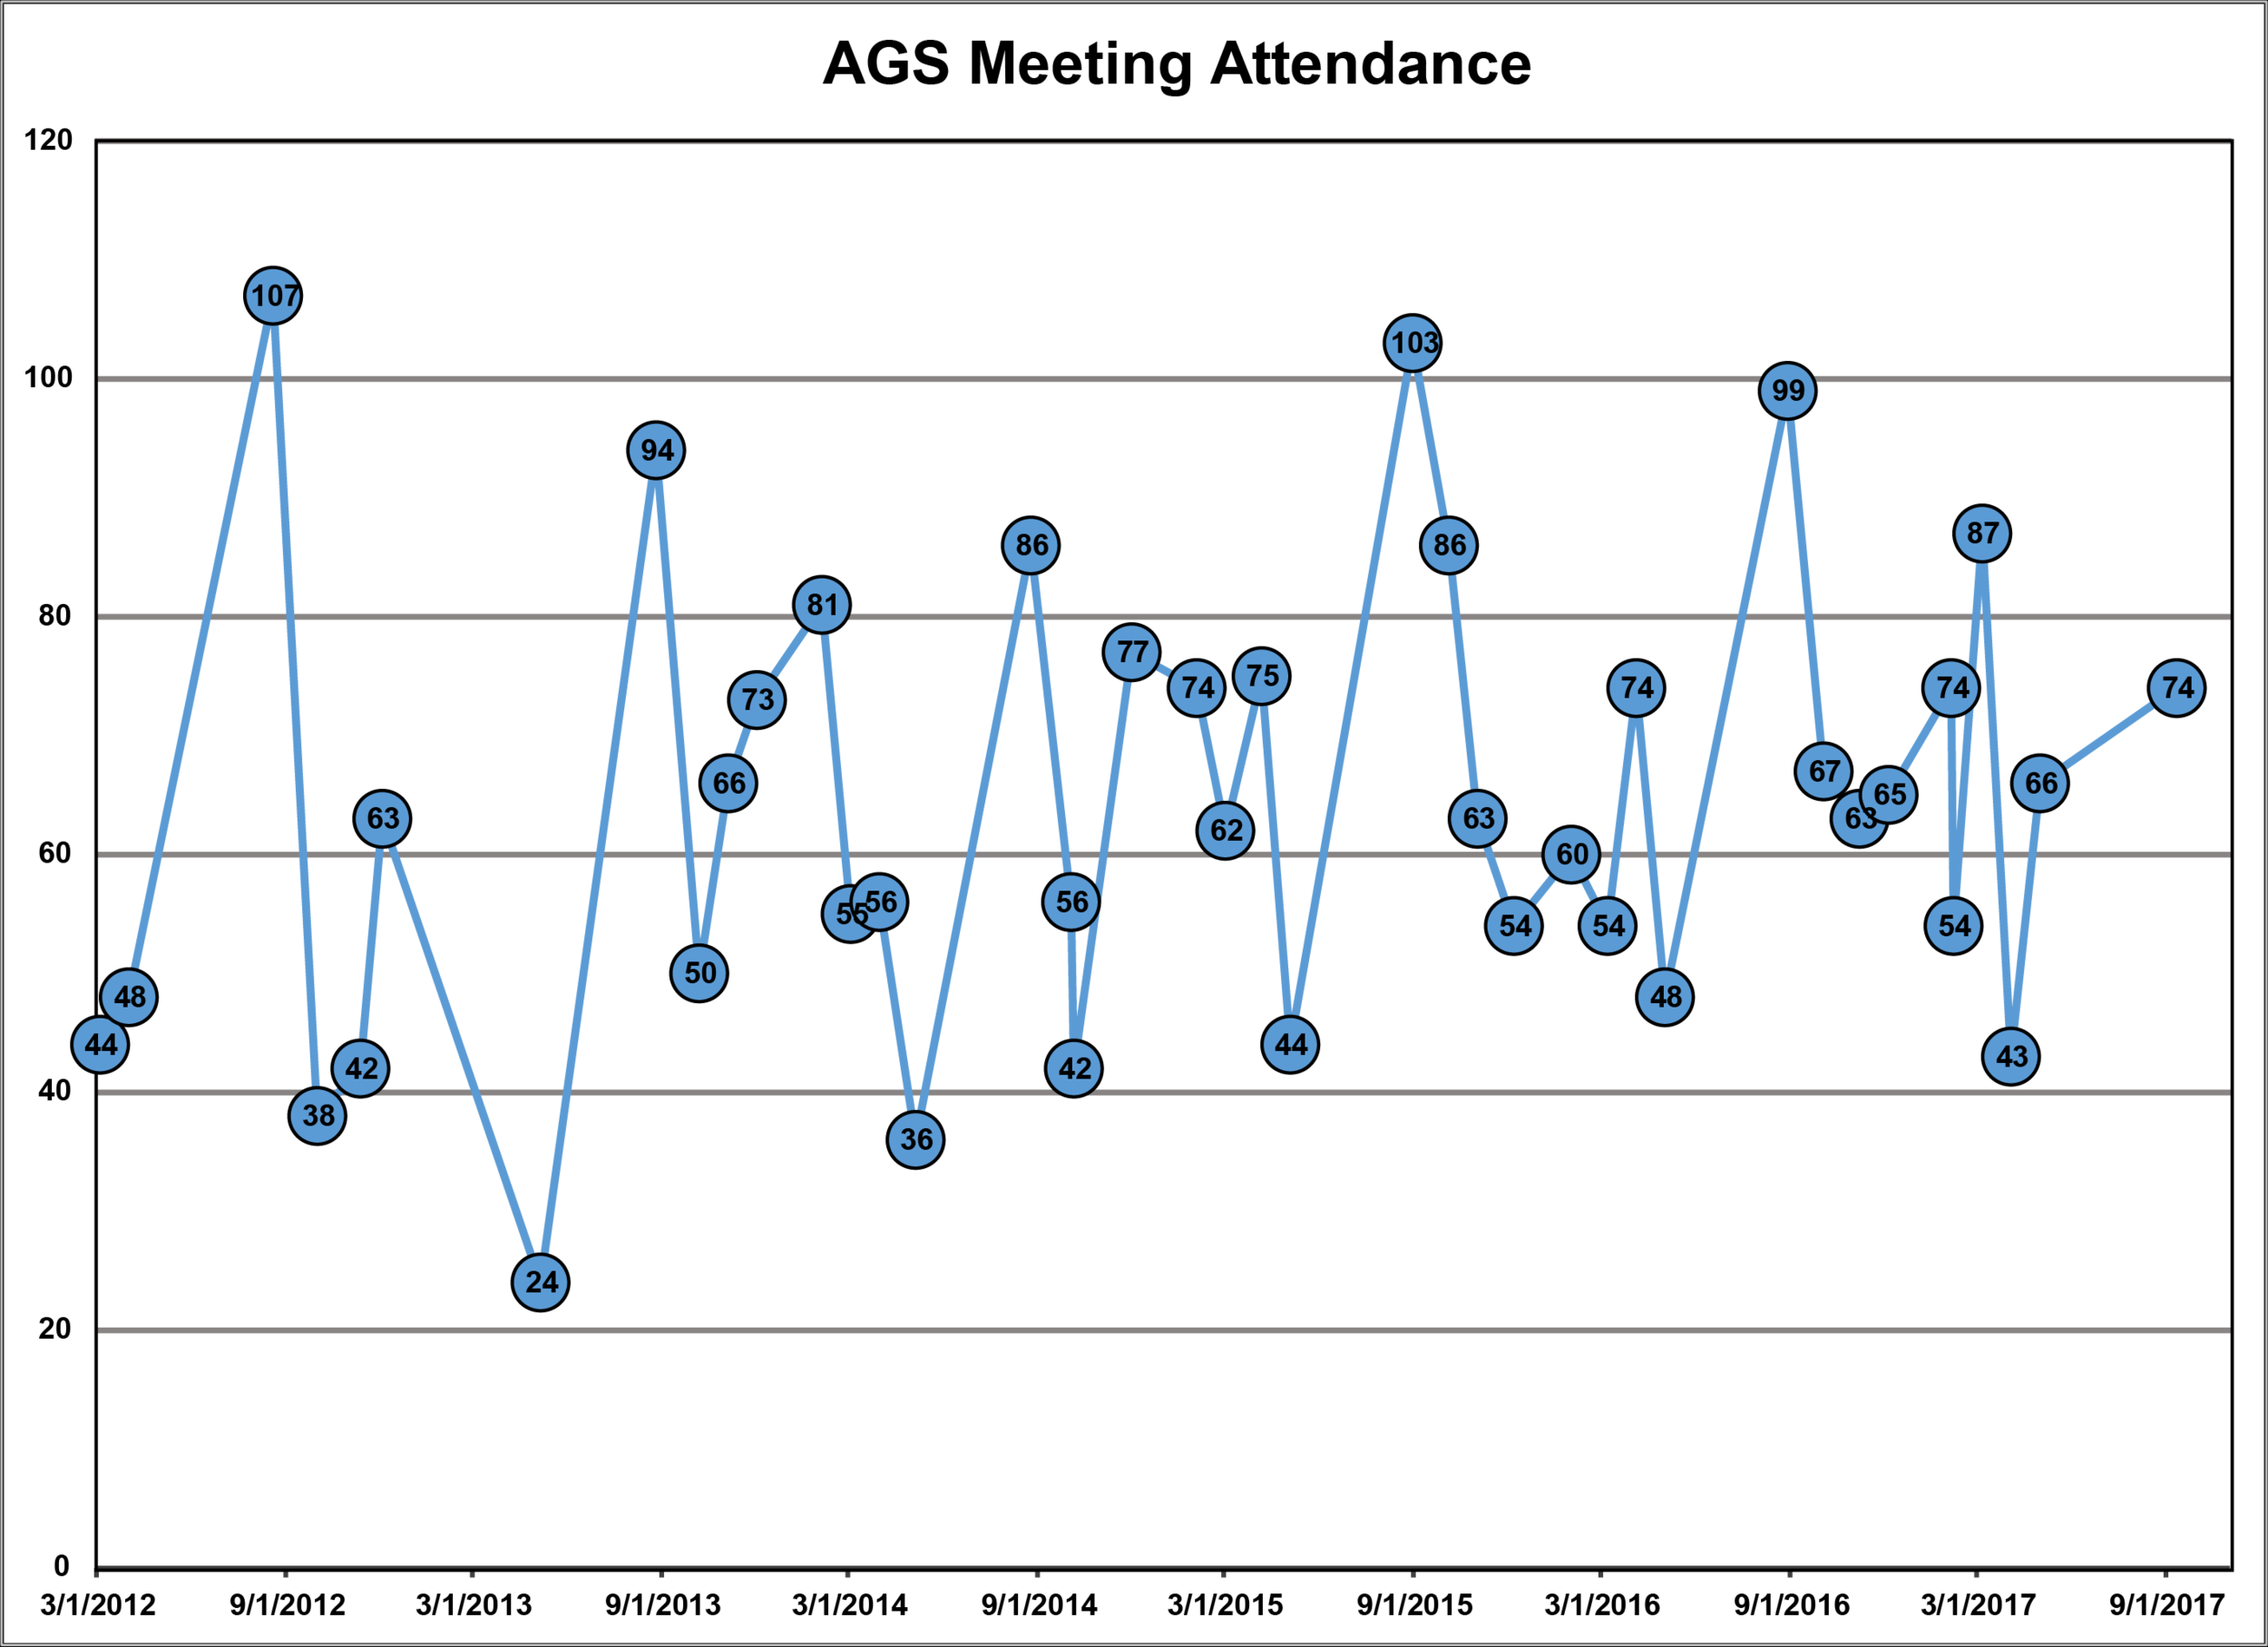 Attendance graph since 2012. Average and median attendance is 63 per meeting.